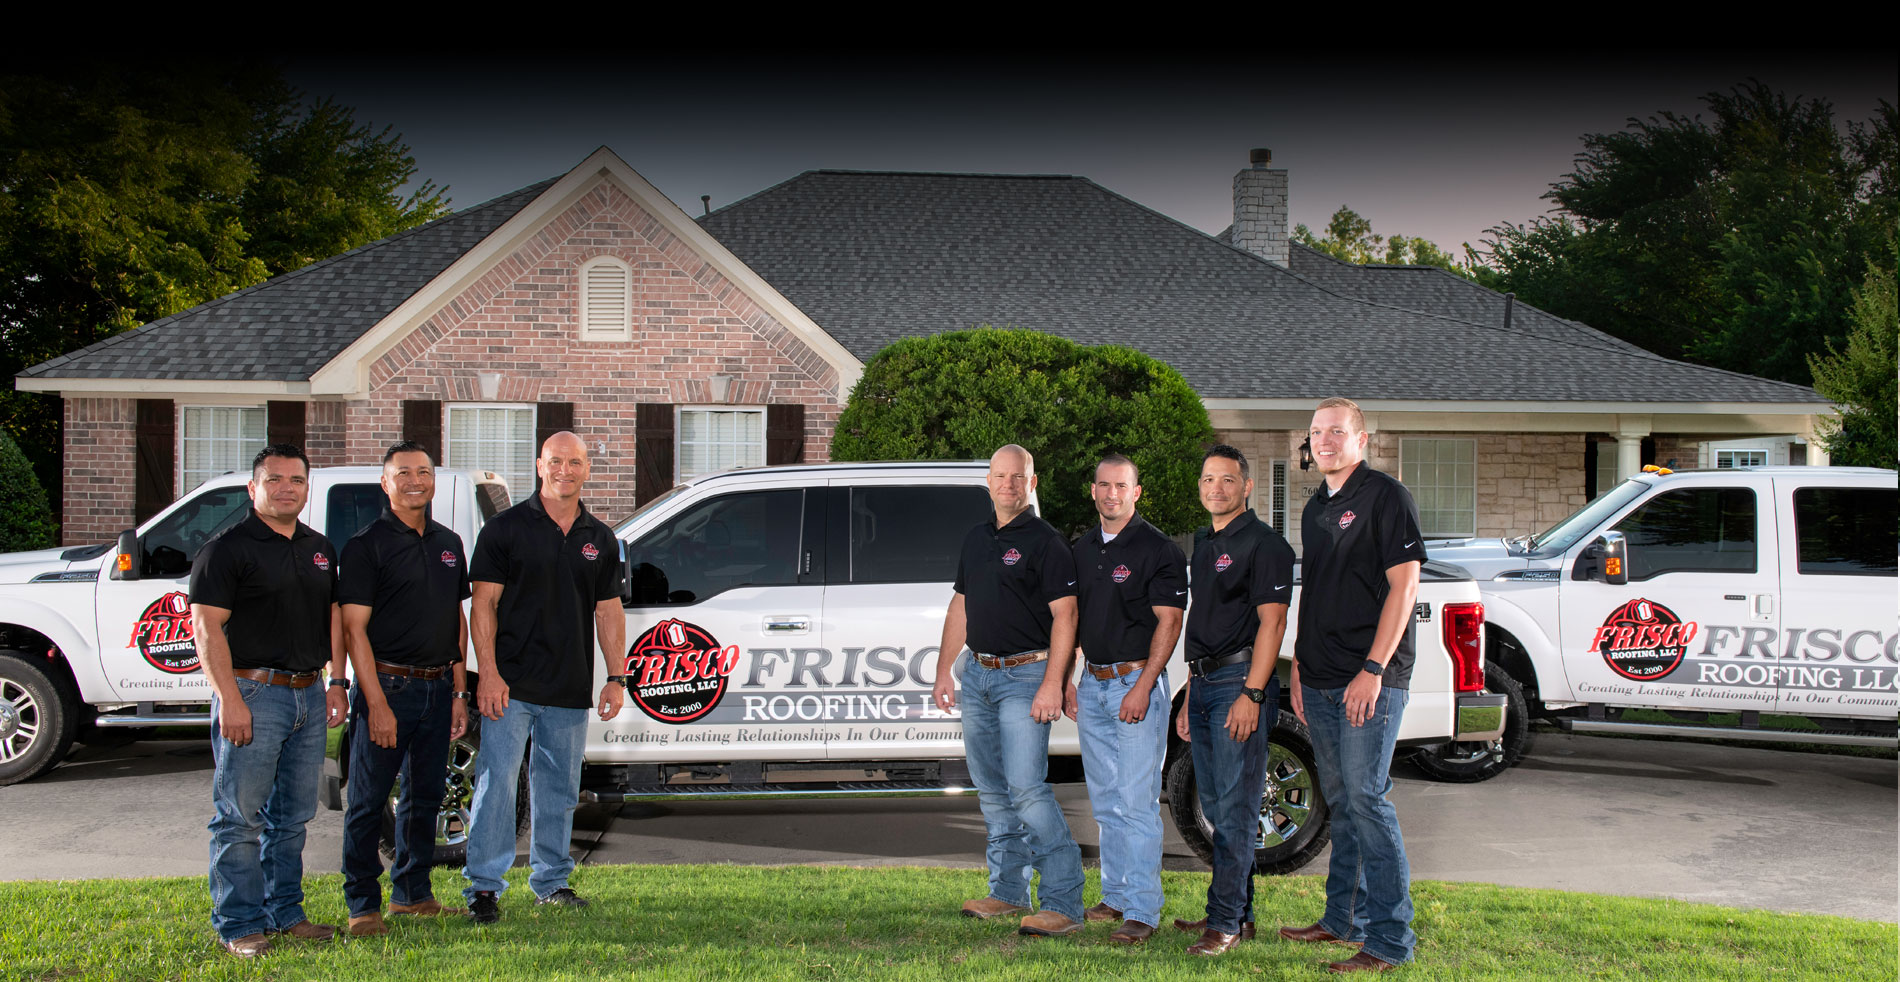 Frisco Roofing Contractors